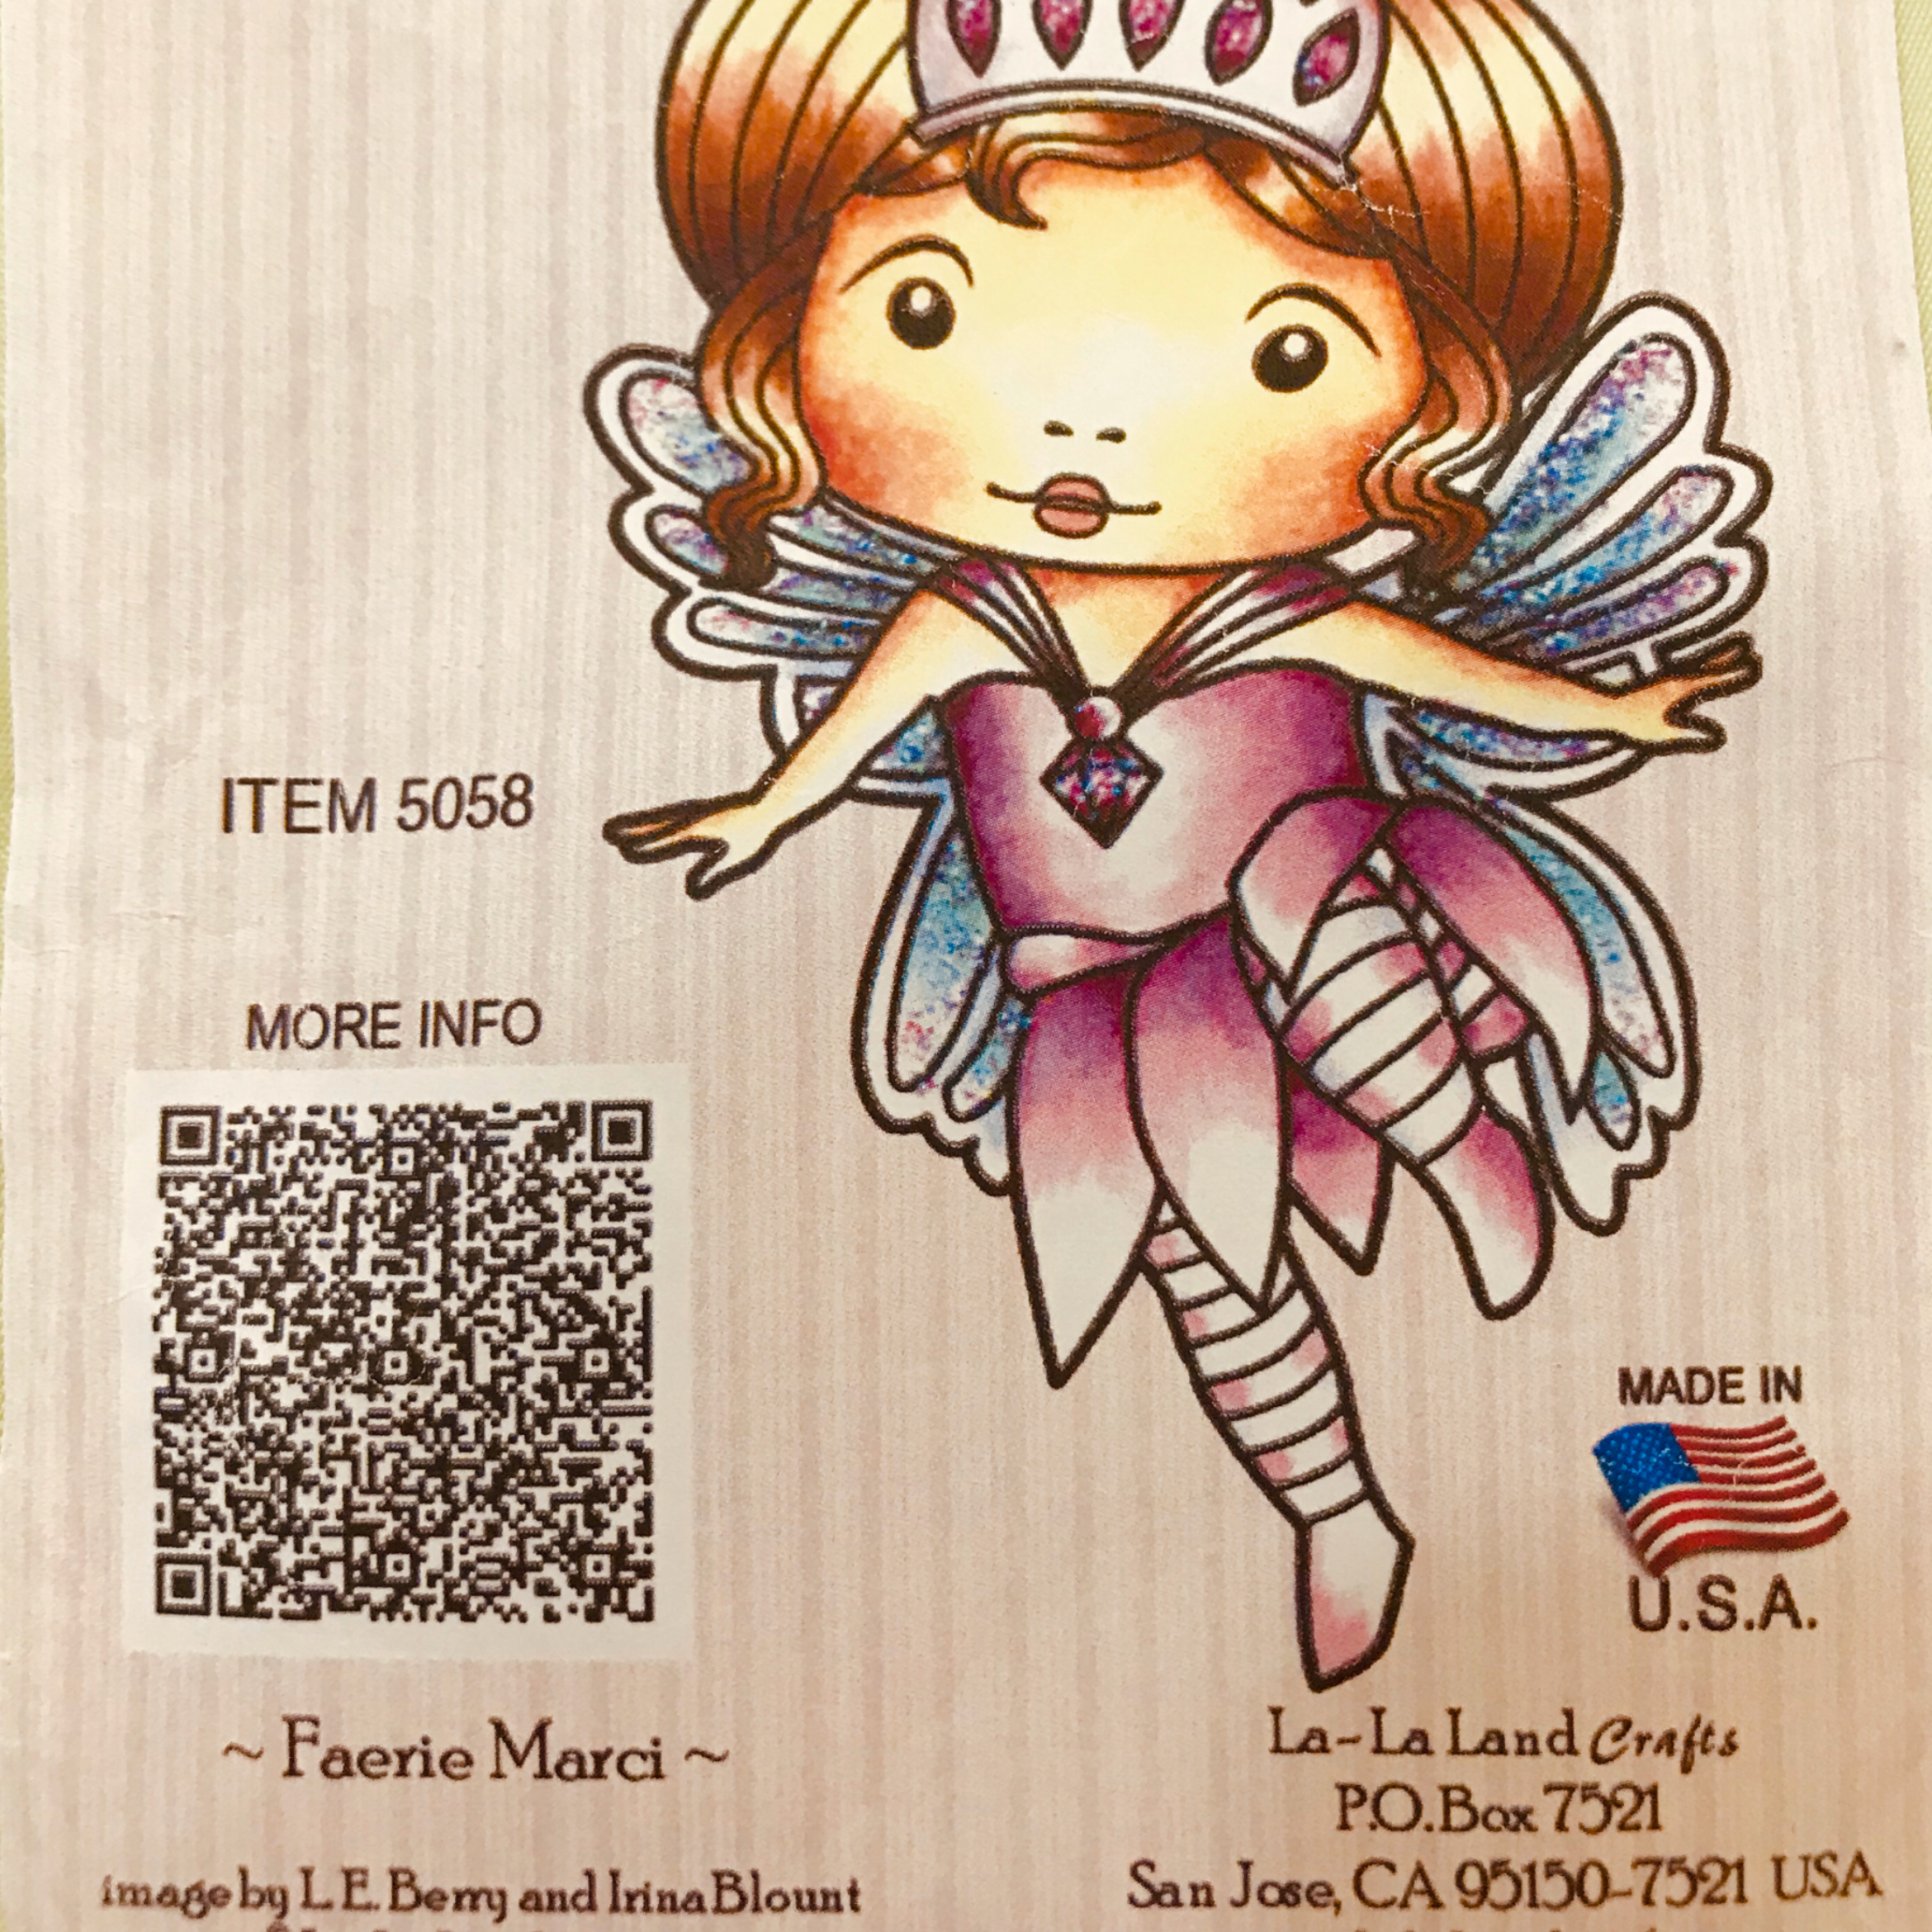 La-La Land Crafts Faerie Marci Rubber Stamps